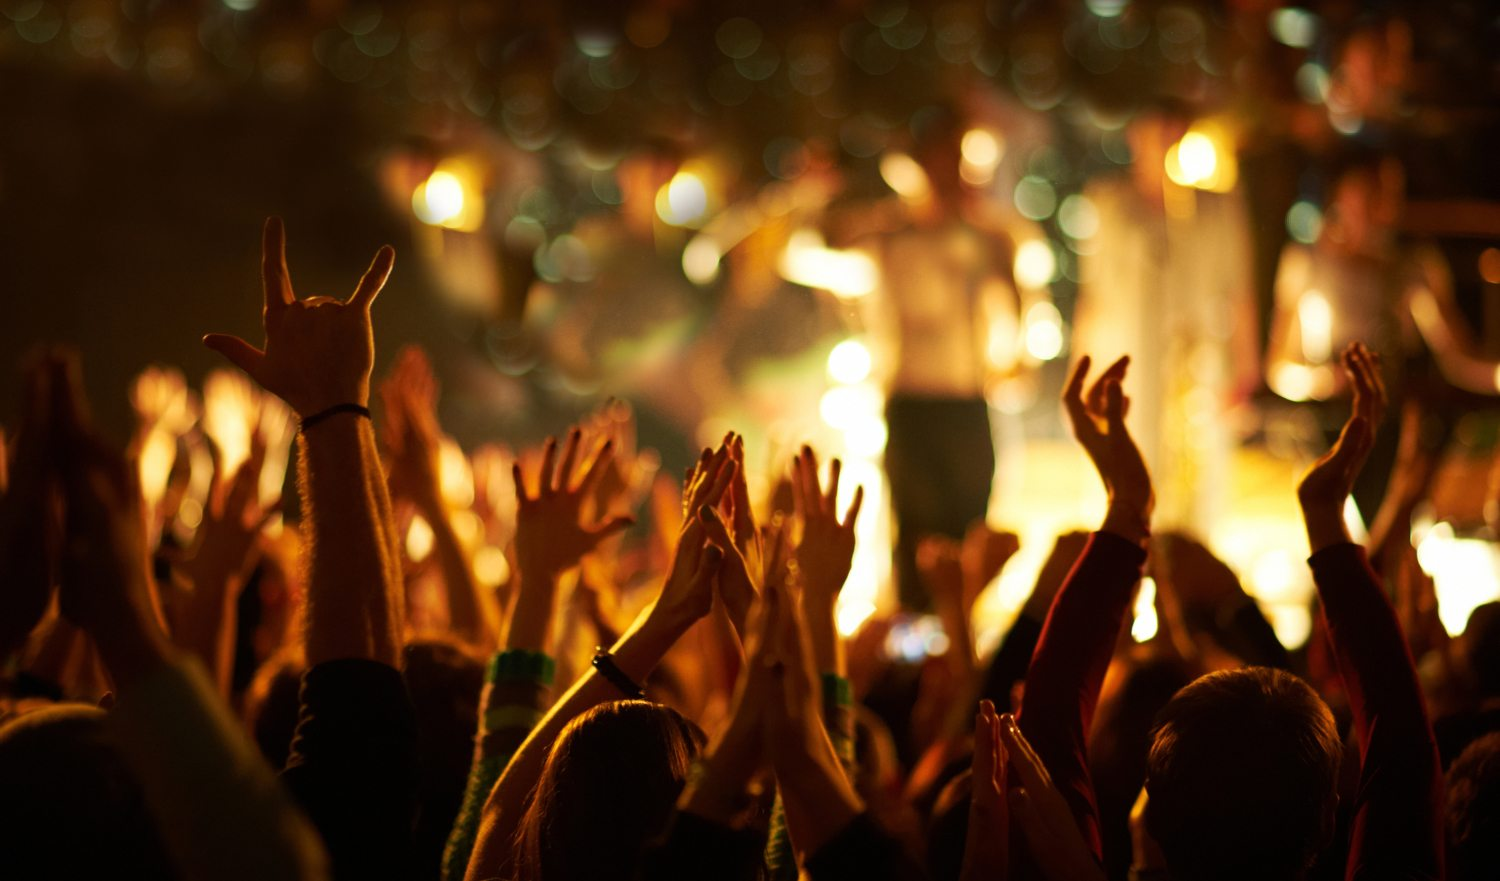 Audience with hands in the air at a music festival. Unrecognizable people.